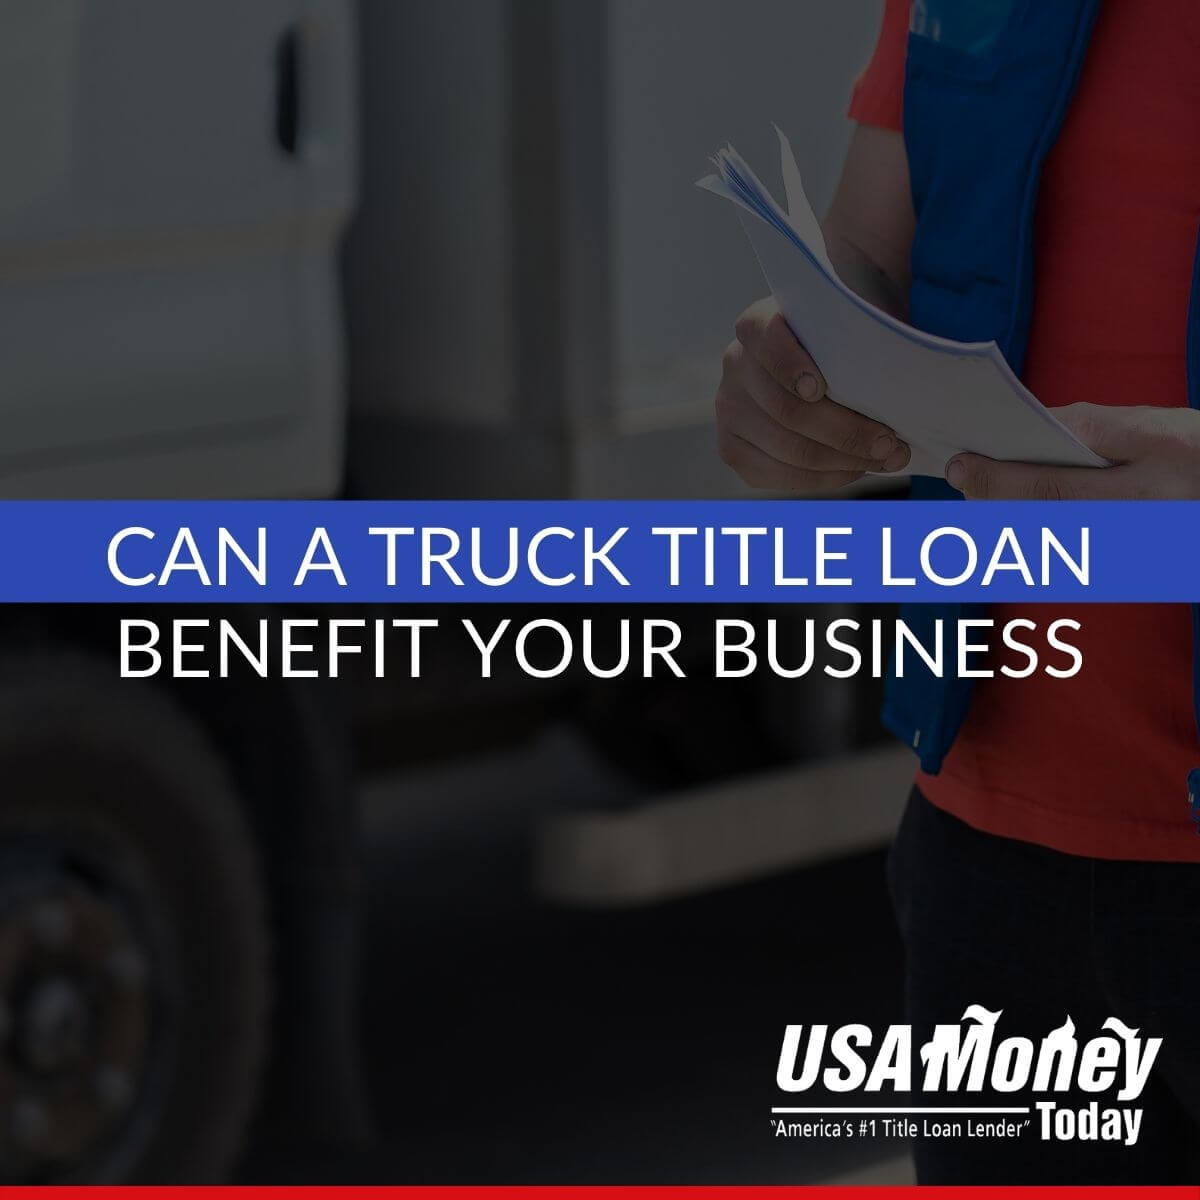 Can a Truck Title Loan Benefit Your Business?